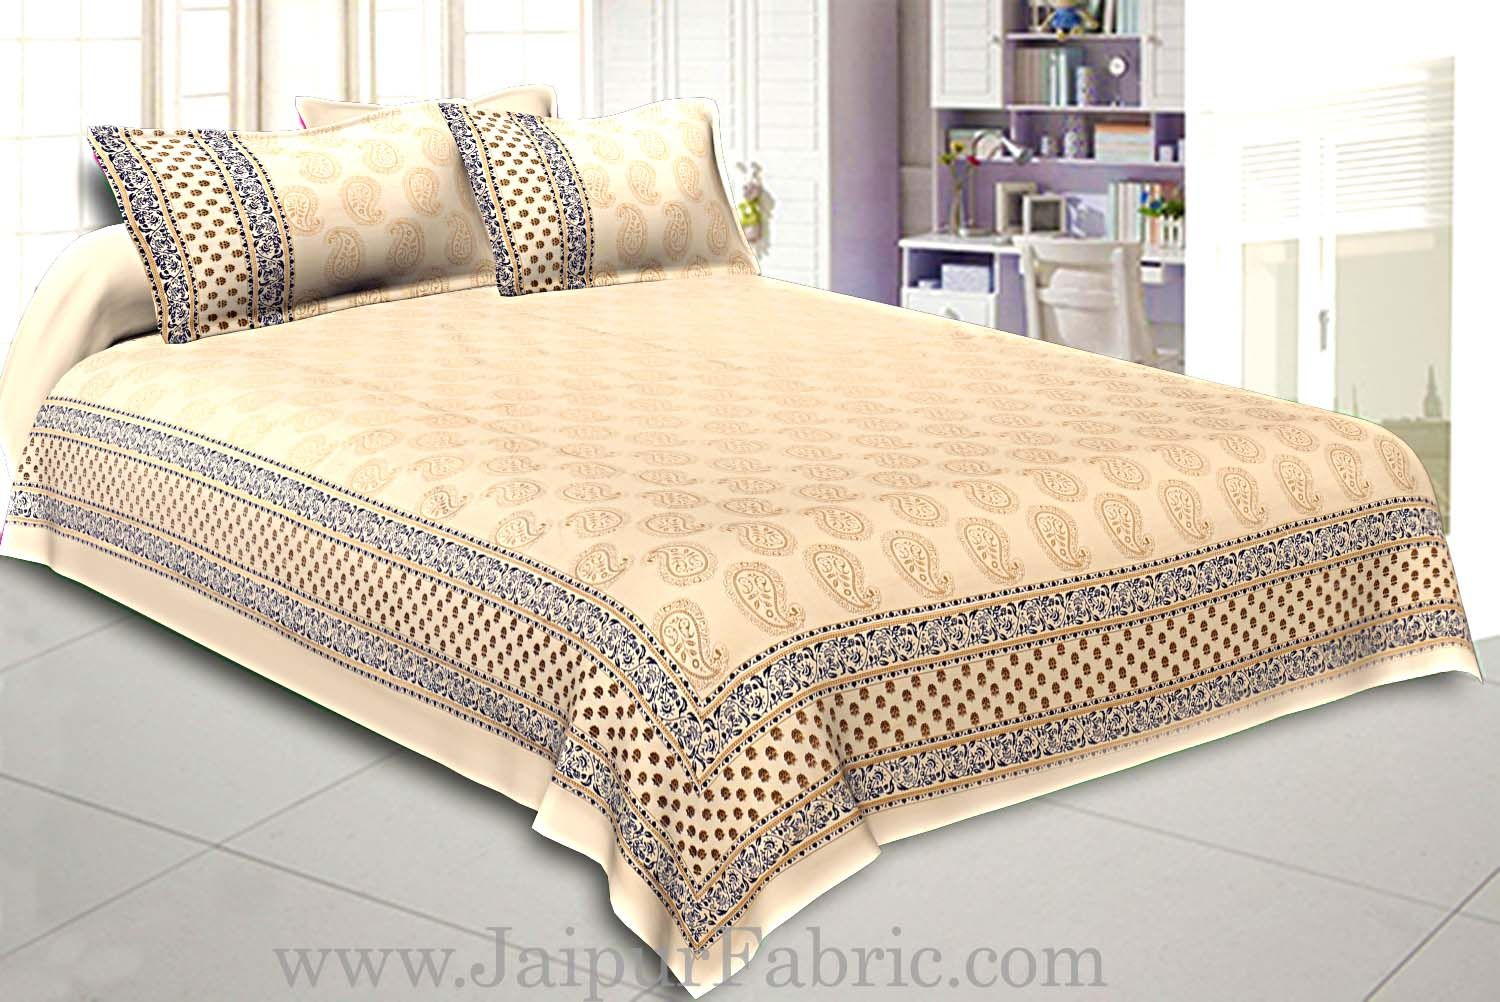 Double Cotton Bed Sheet  Cream  Base With Golden hand Block Leaf  Print